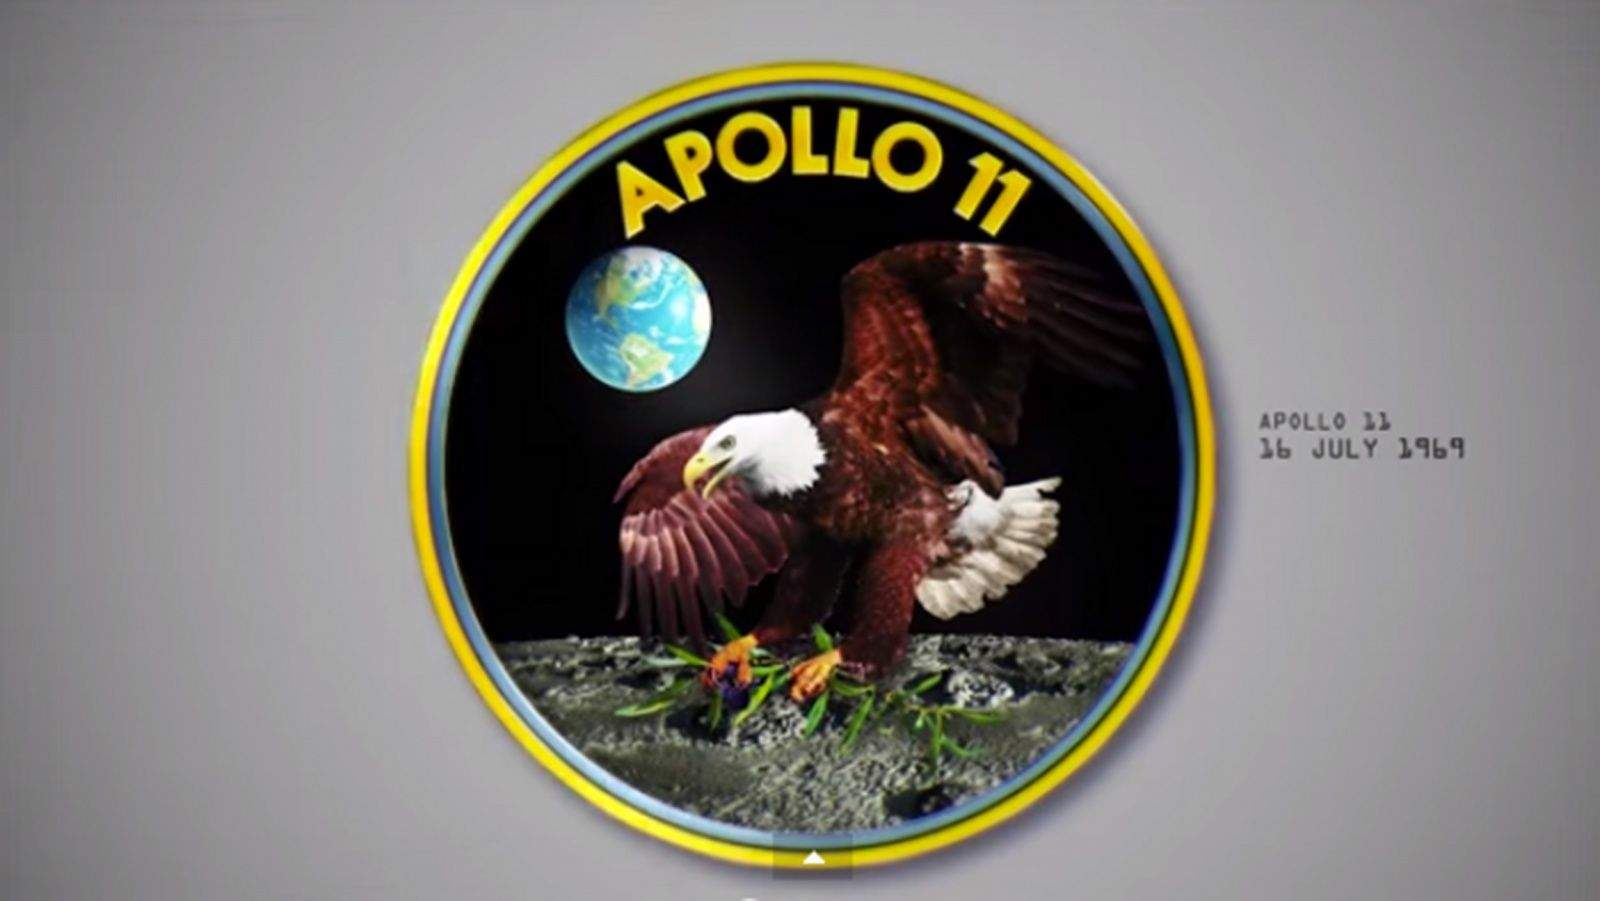 The Apollo 11 mission patch. Photo: NASA/Neil F. Smith/YouTube